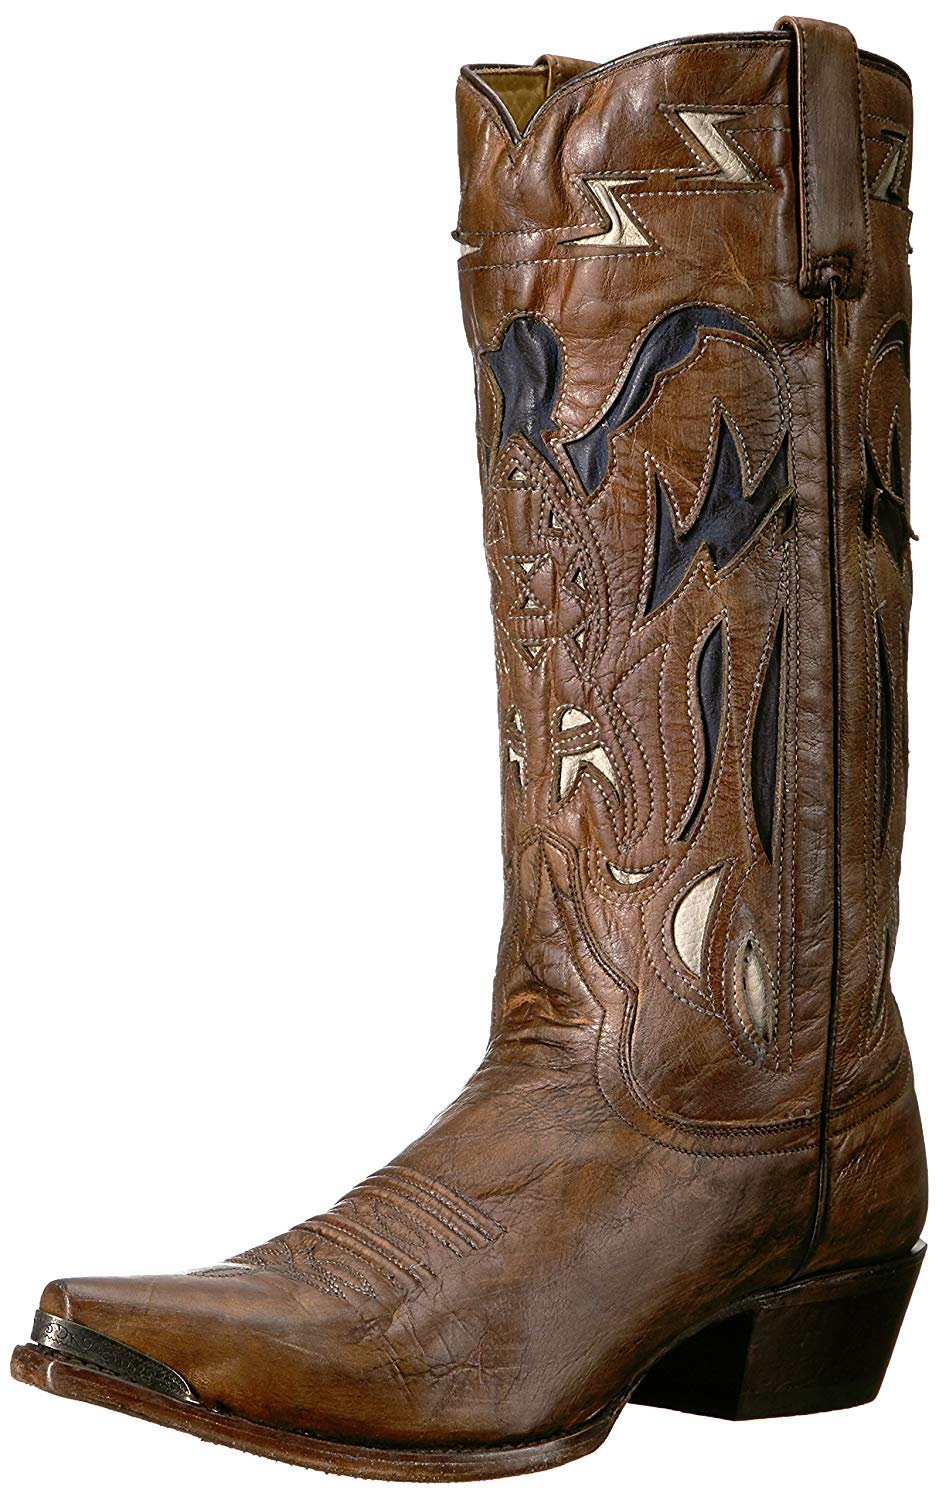 Stetson Stetson Stetson Women's Mamie Western Boot, Brown, Size 10.0 79ca04